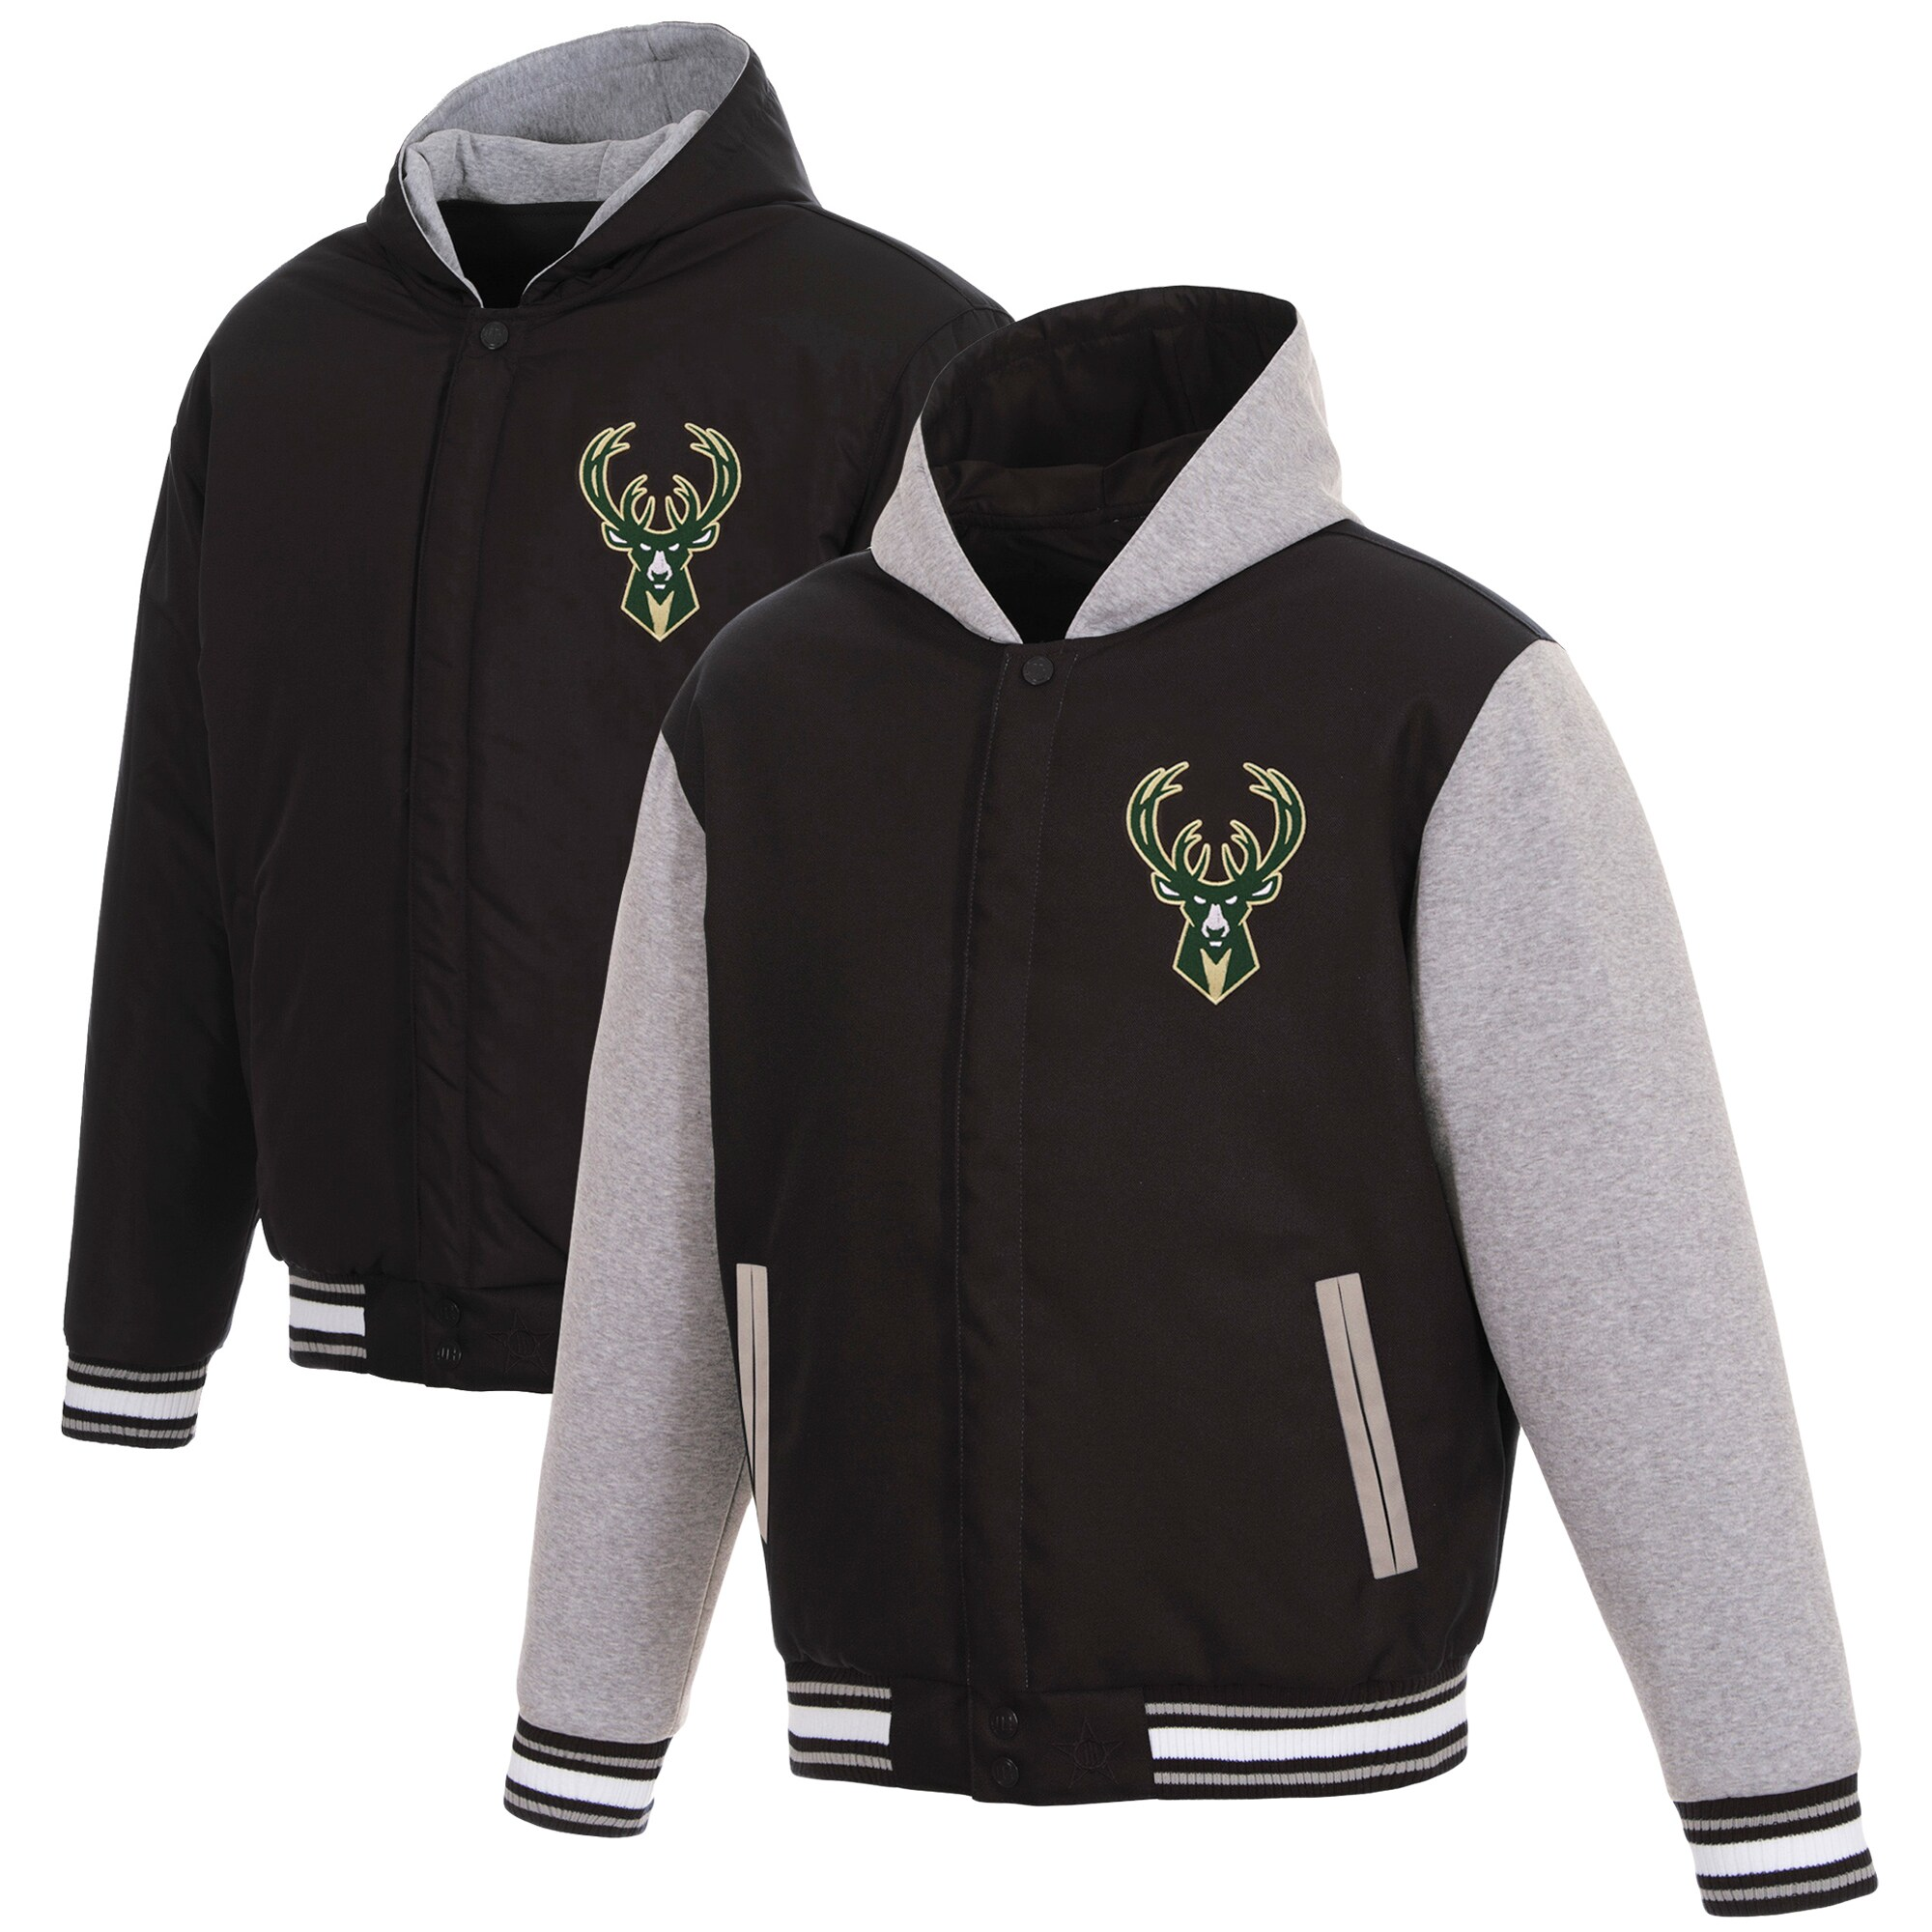 Milwaukee Bucks JH Design Reversible Poly-Twill Hooded Jacket with Fleece Sleeves - Black/Gray